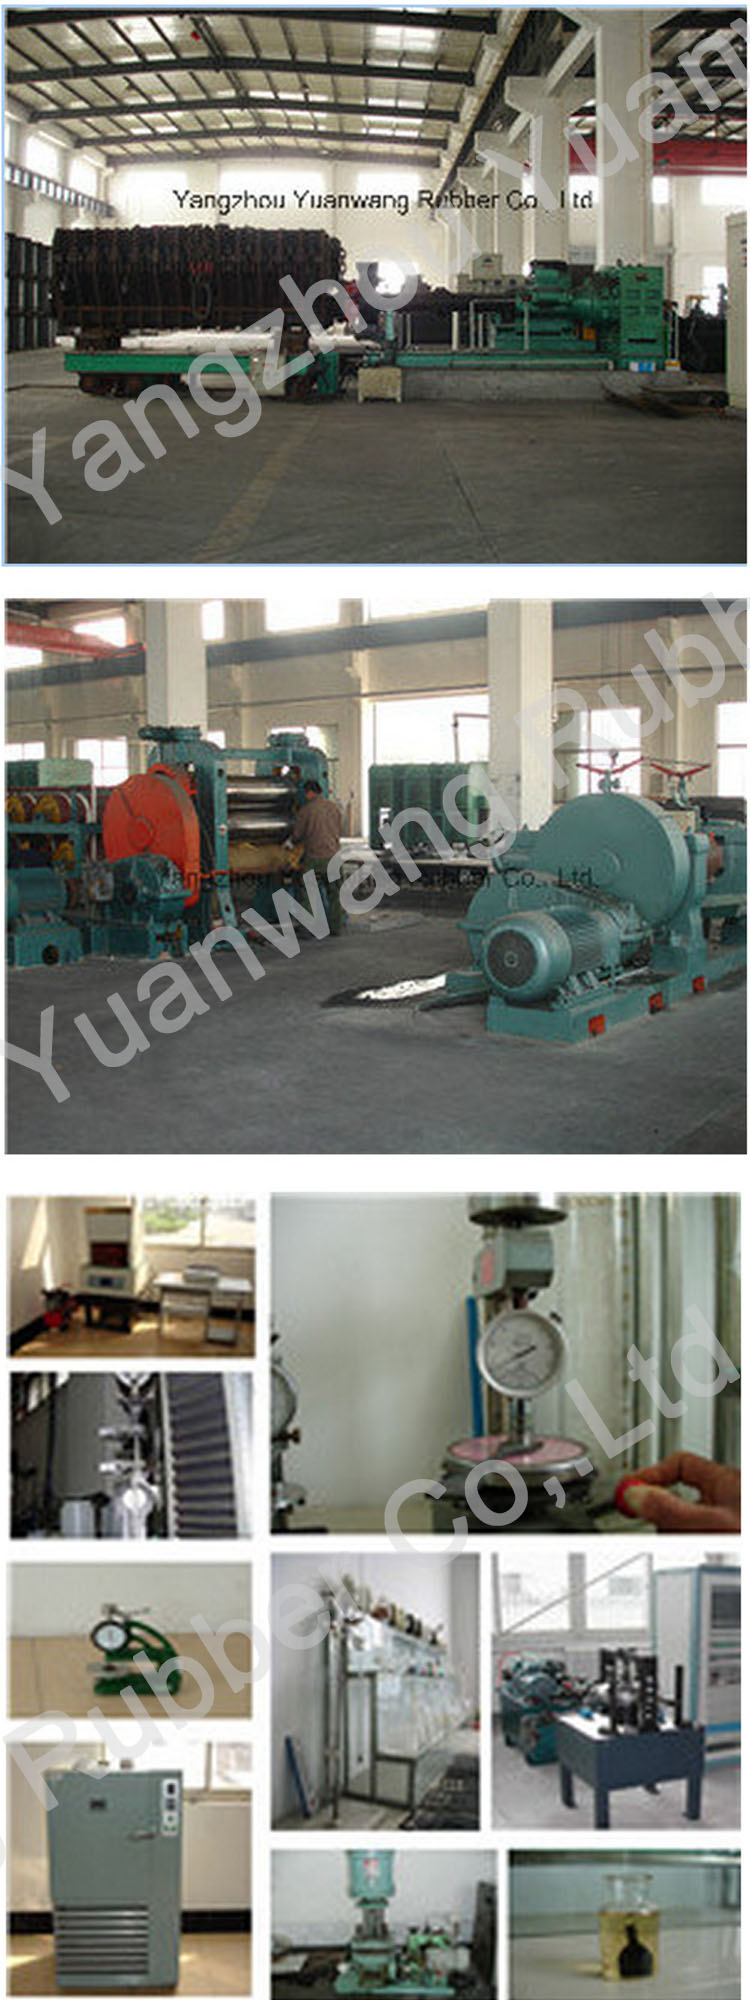 Top Quality Roller Rubber Fender